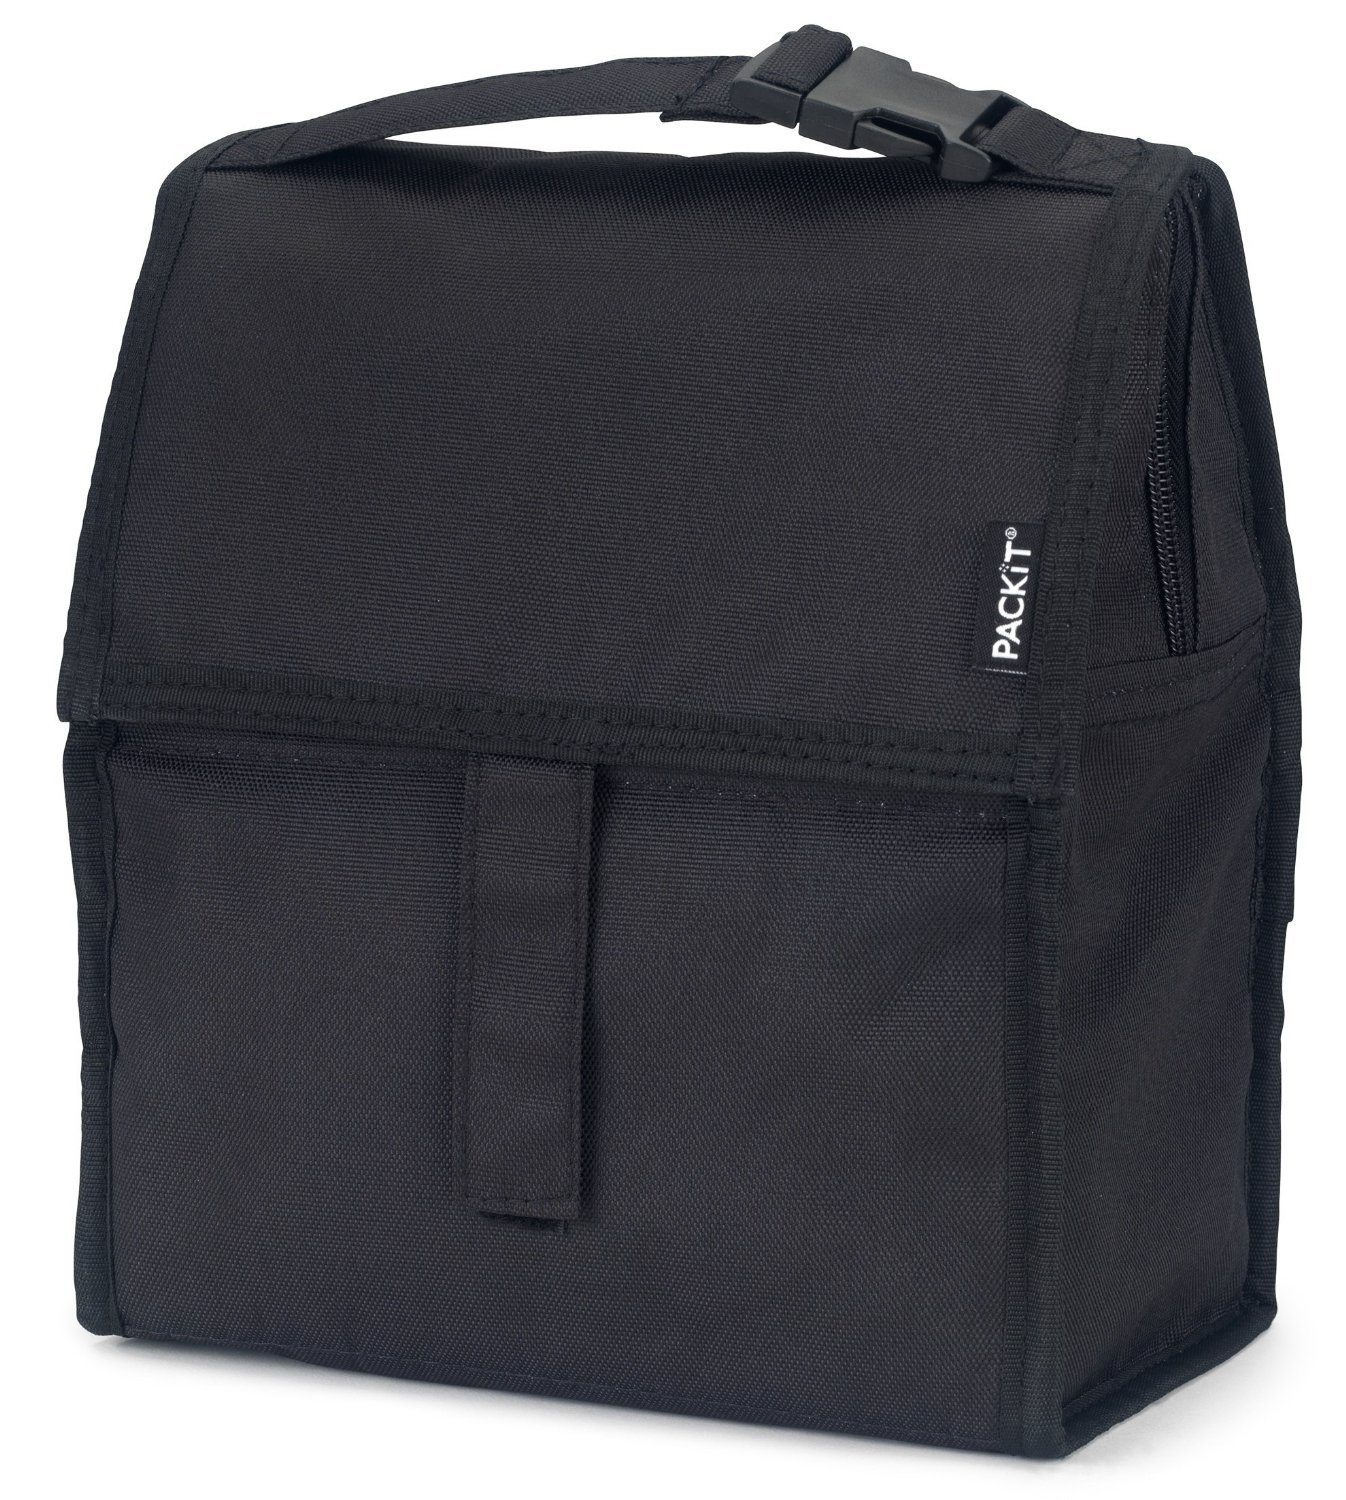 81PTZRuWVWL. SL1500  - PackIt Freezable Lunch Bag with Zip Closure, Black